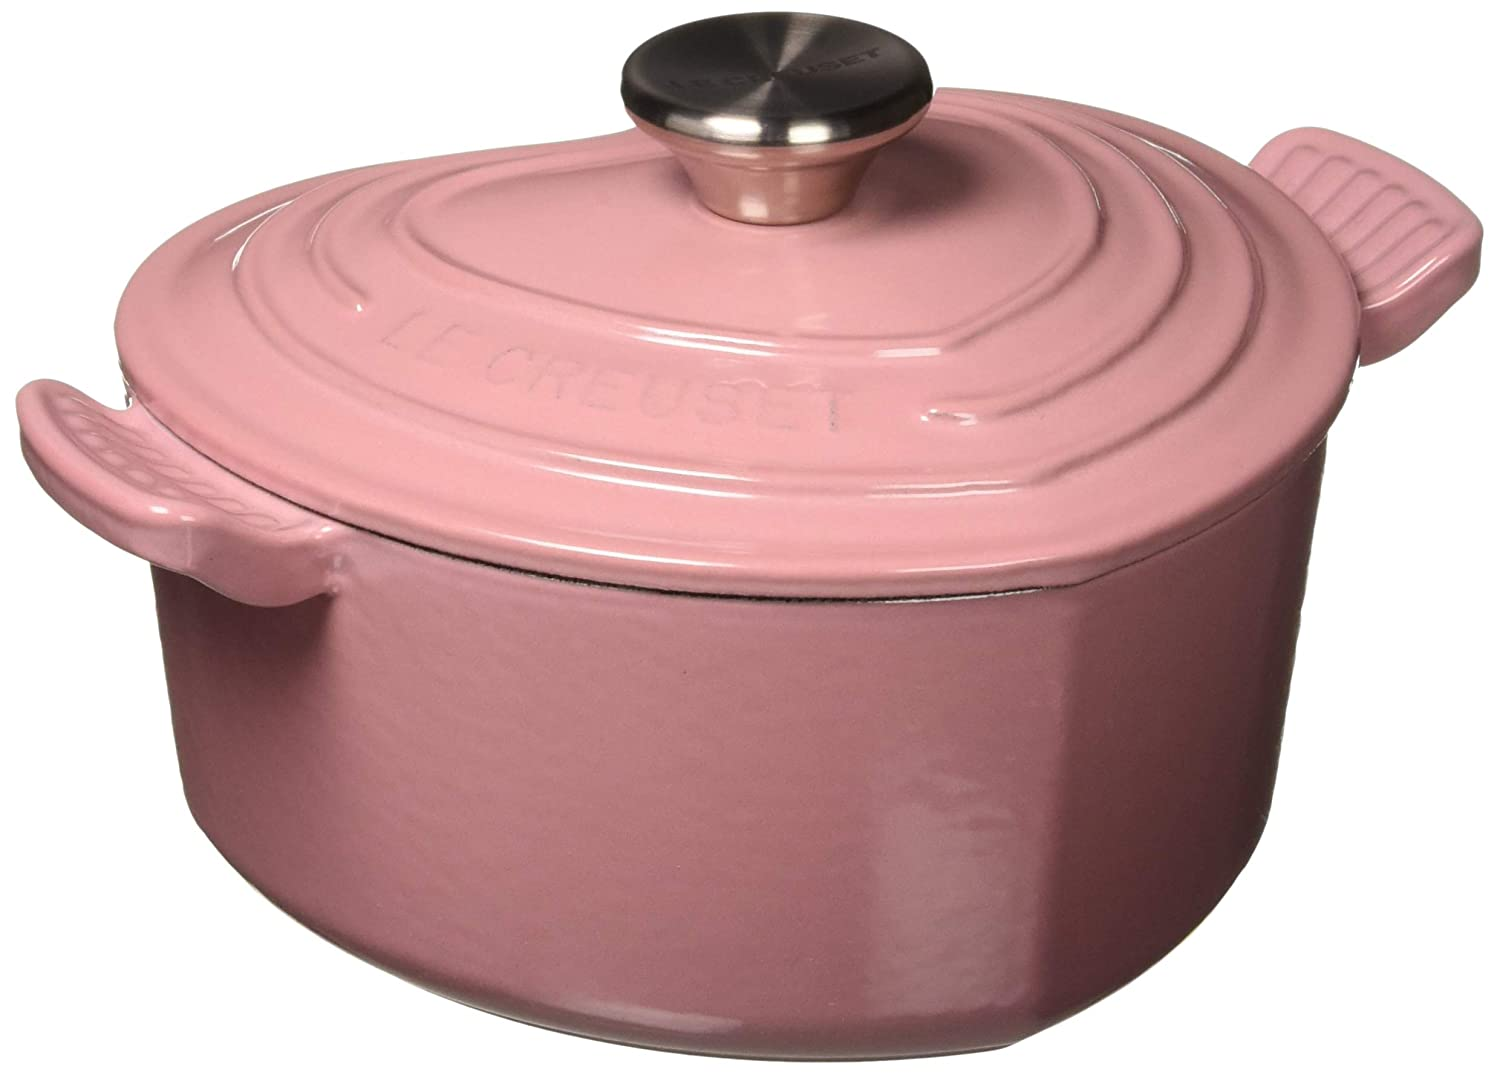 Le Creuset L25C1-028RS Signature Cast Iron Heart Shaped Dutch Oven With Stainless Steel Knob, 2.25 quart, Rose